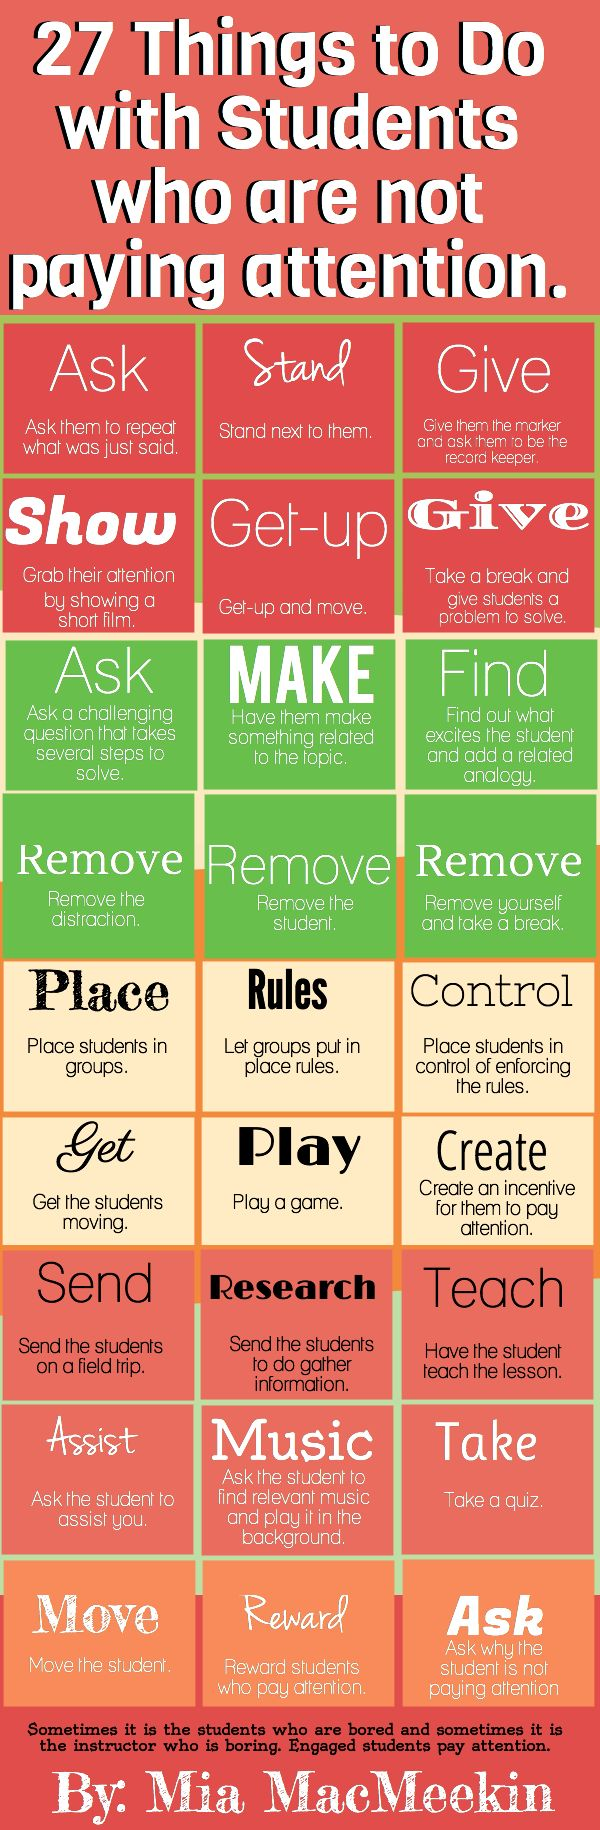 27 Things to Do With Students Who Are Not Paying Attention